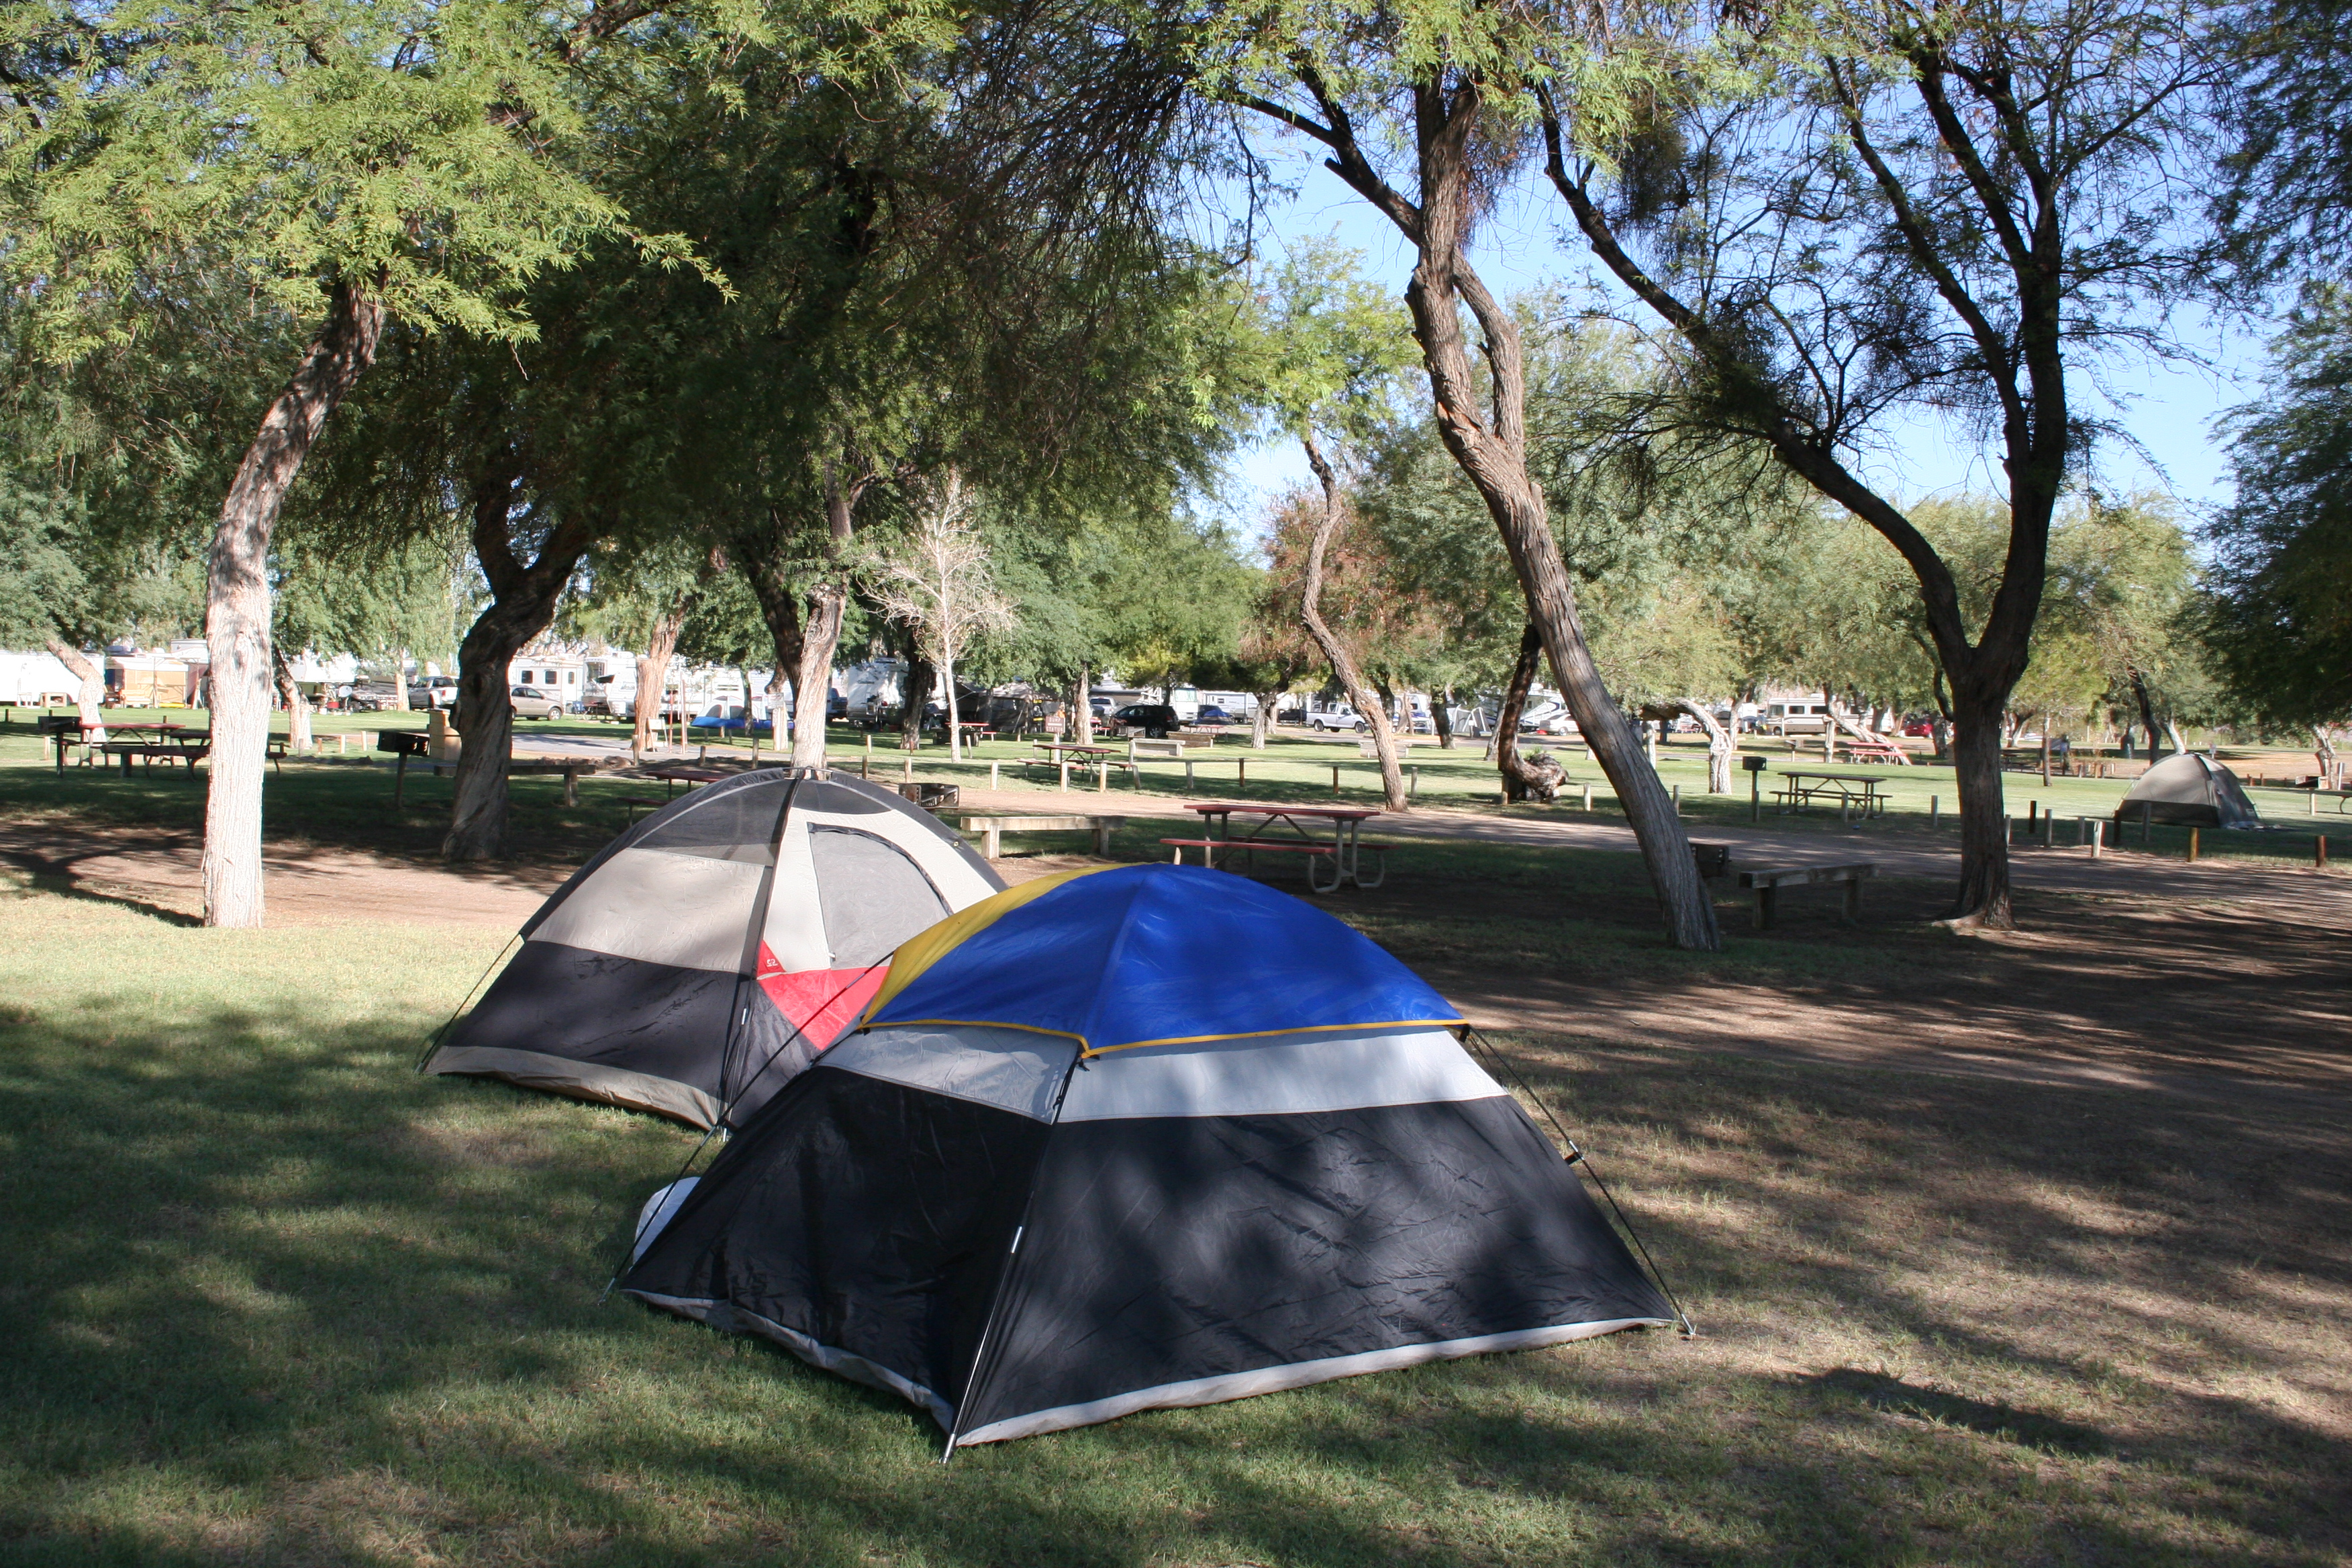 Tent camping at Mayflower Park